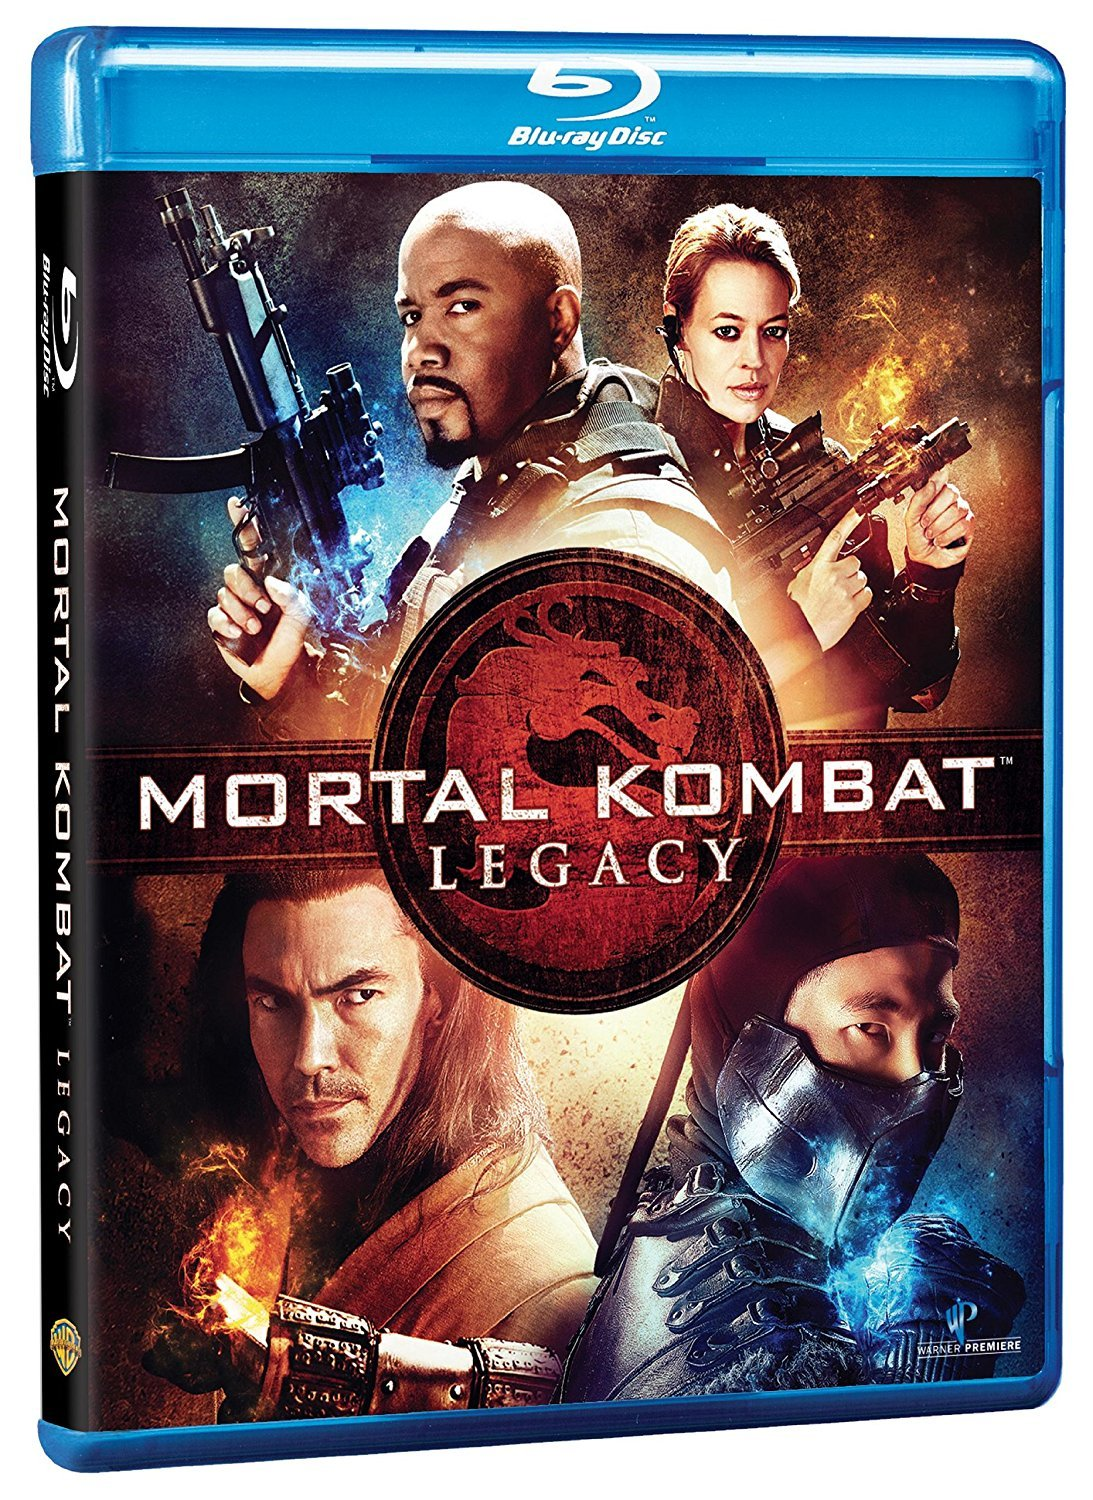 Mortal Kombat: Legacy (Blu-ray Disc, 2011)